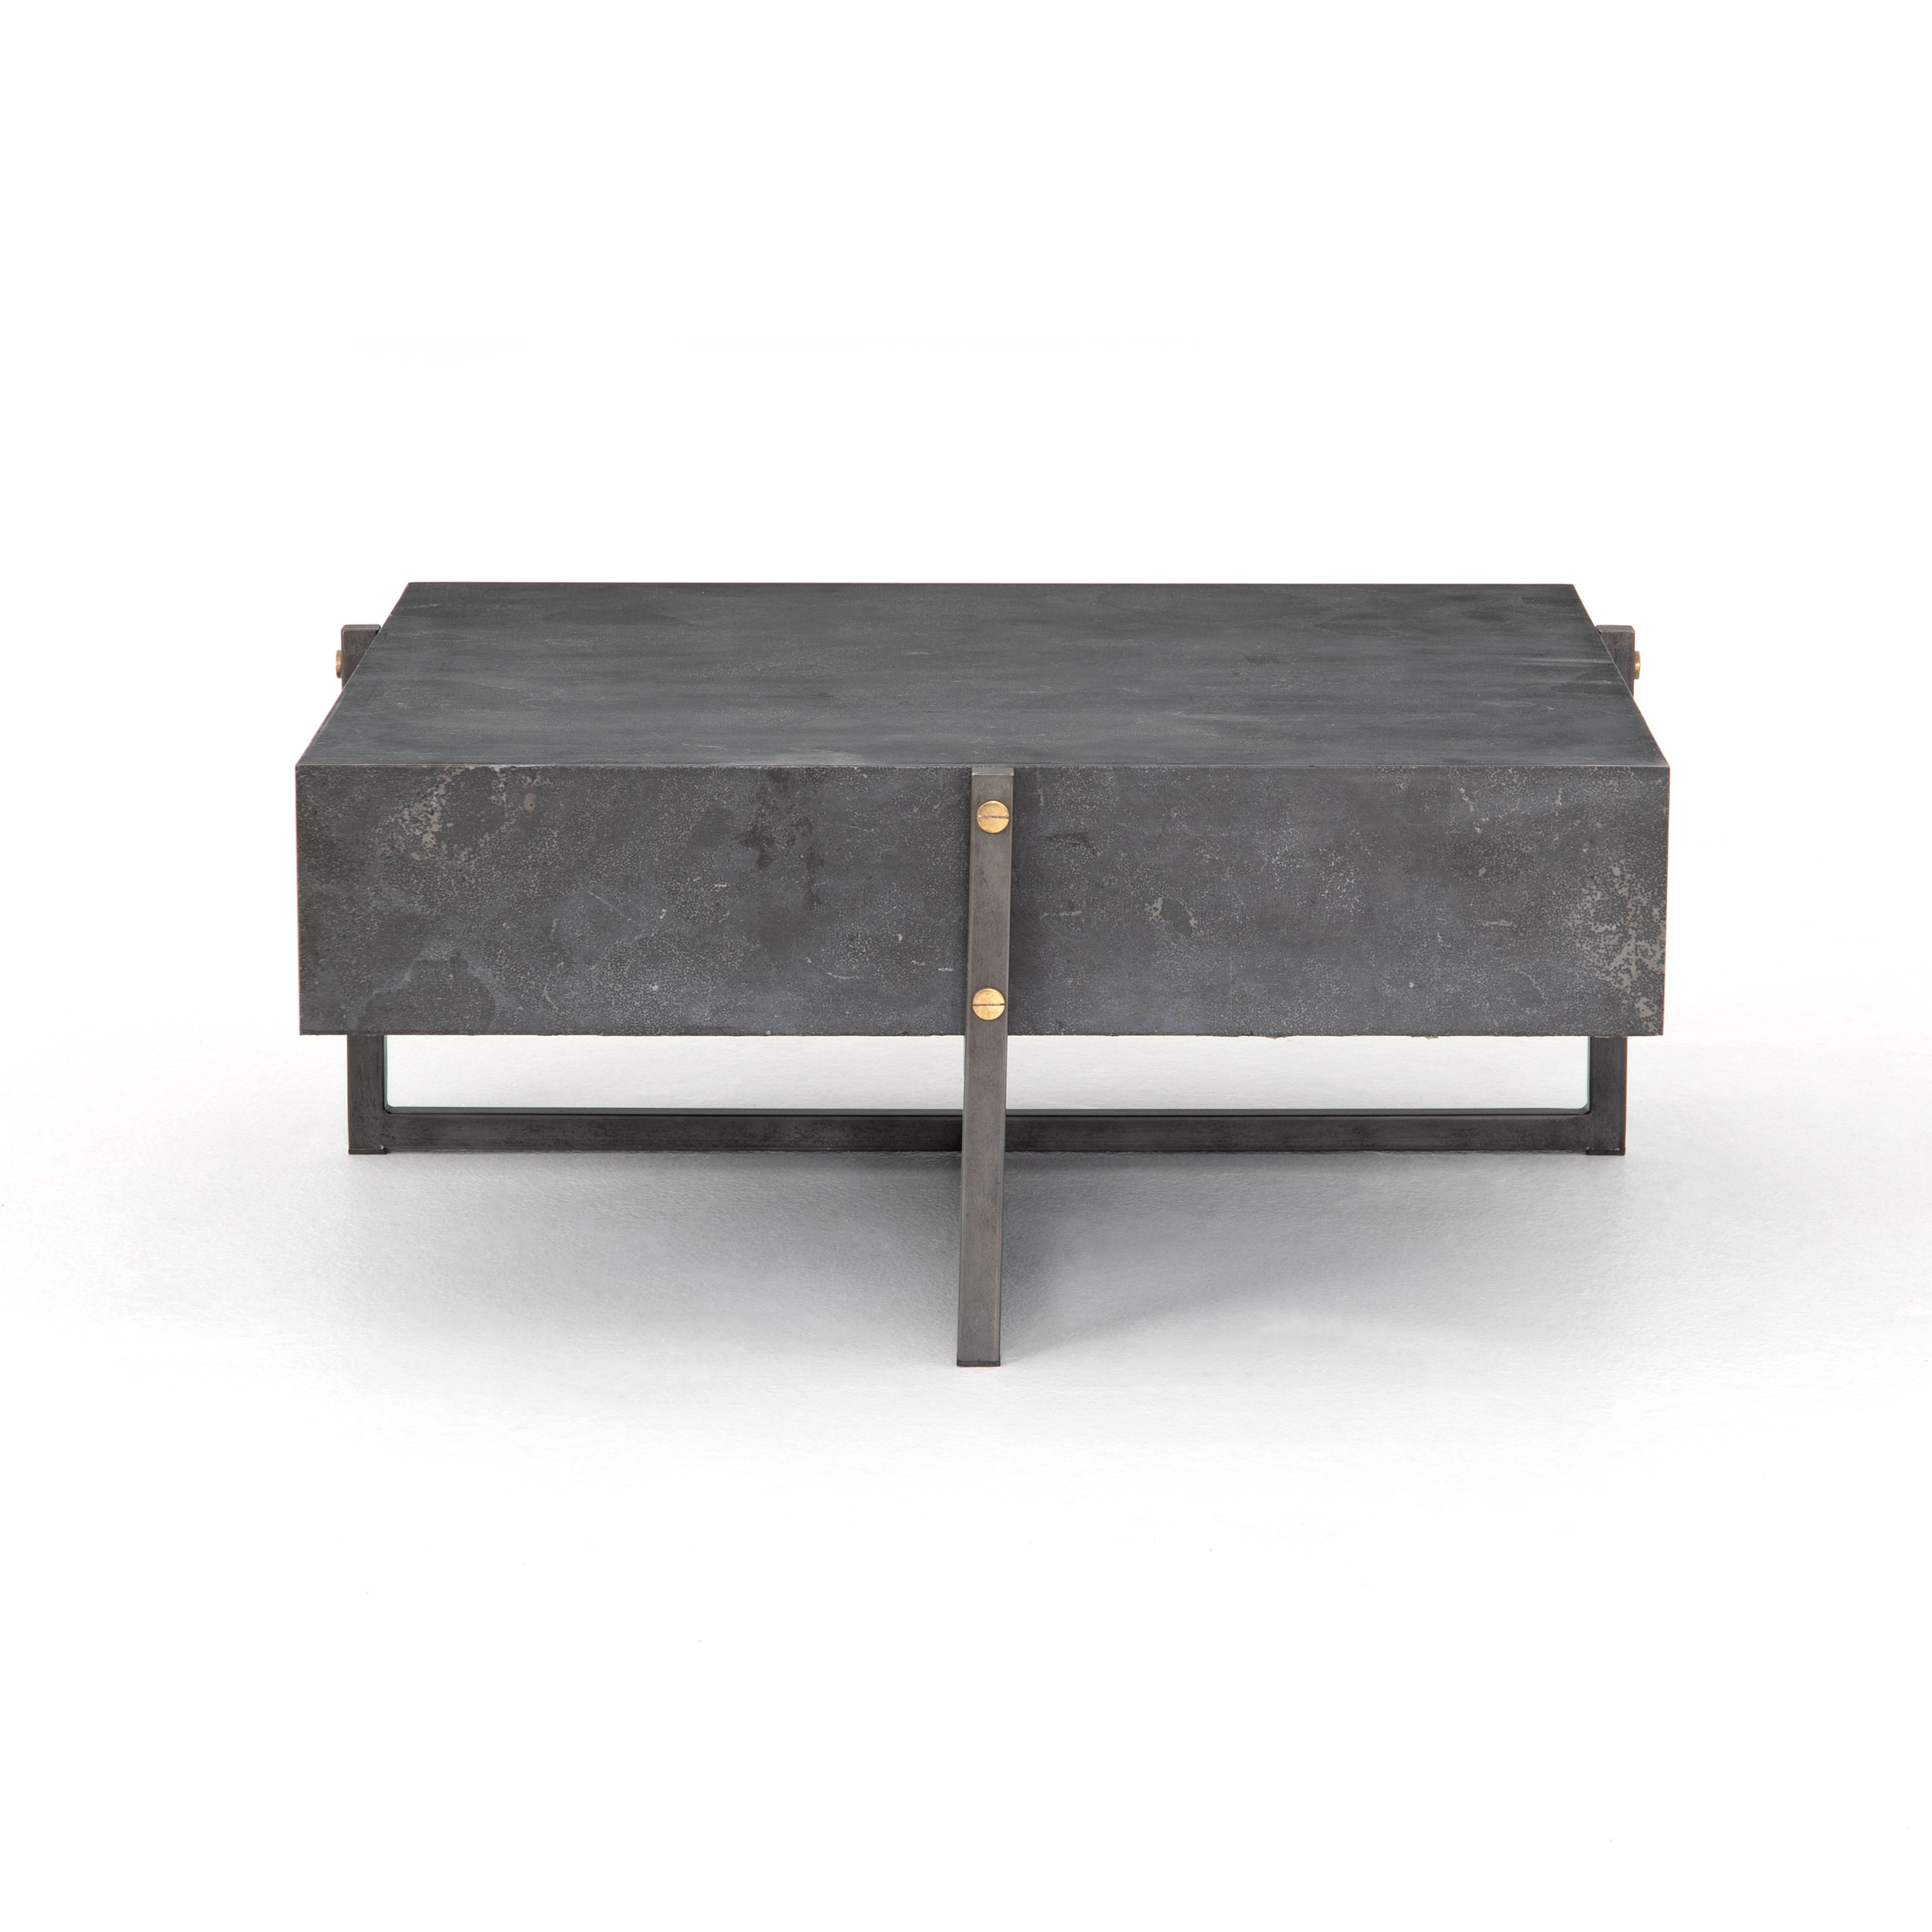 Keppler Square Coffee Table    |  Style, squared. A low, modern-minded coffee table of solid bluestone sits within a rustic black iron framing, for a light look with substantial feel, and a side of industrial edge.